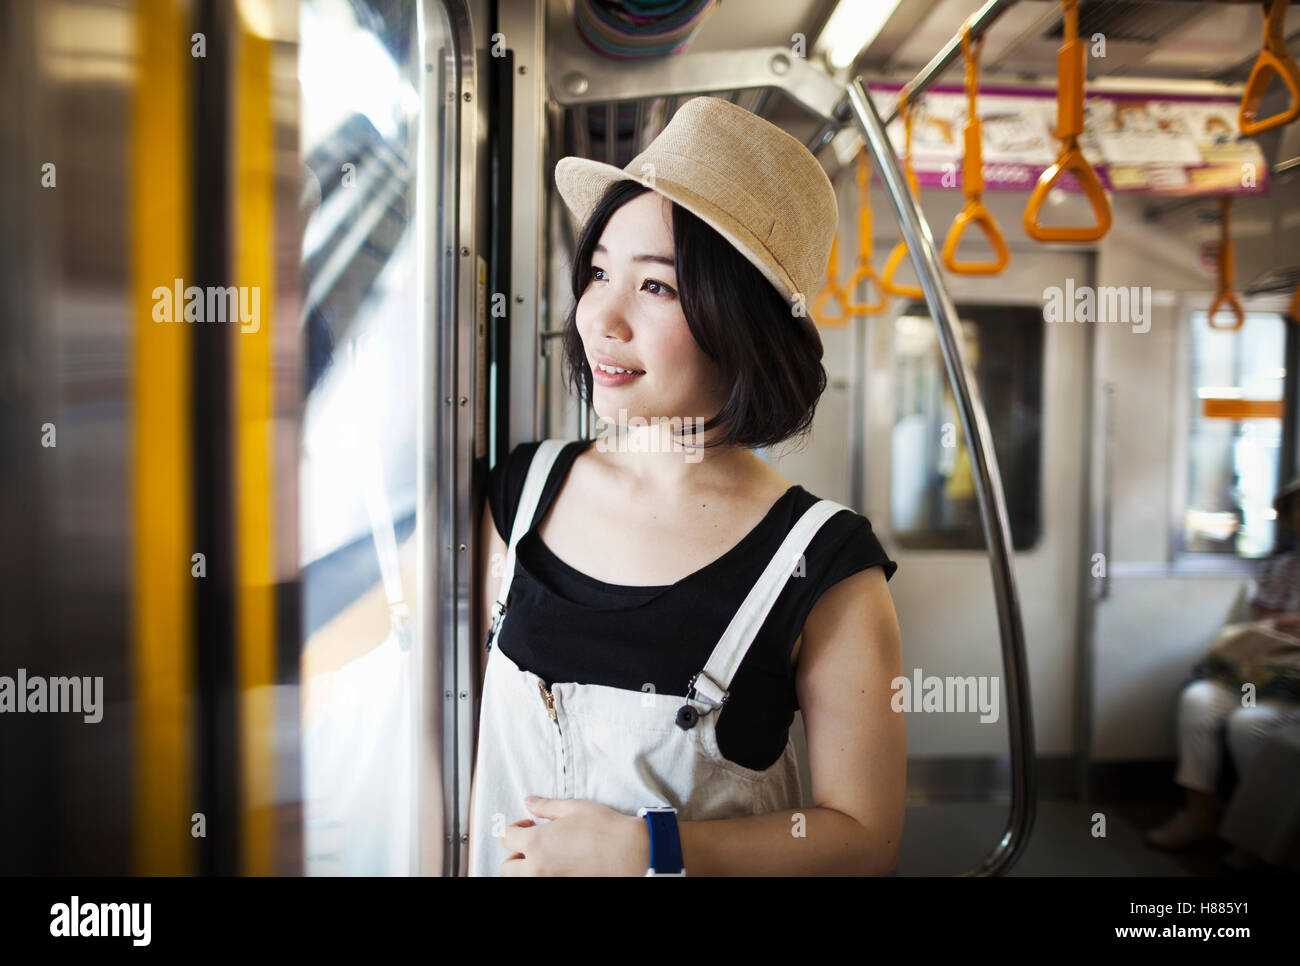 Young woman wearing a hat traveling on a train. - Stock Image